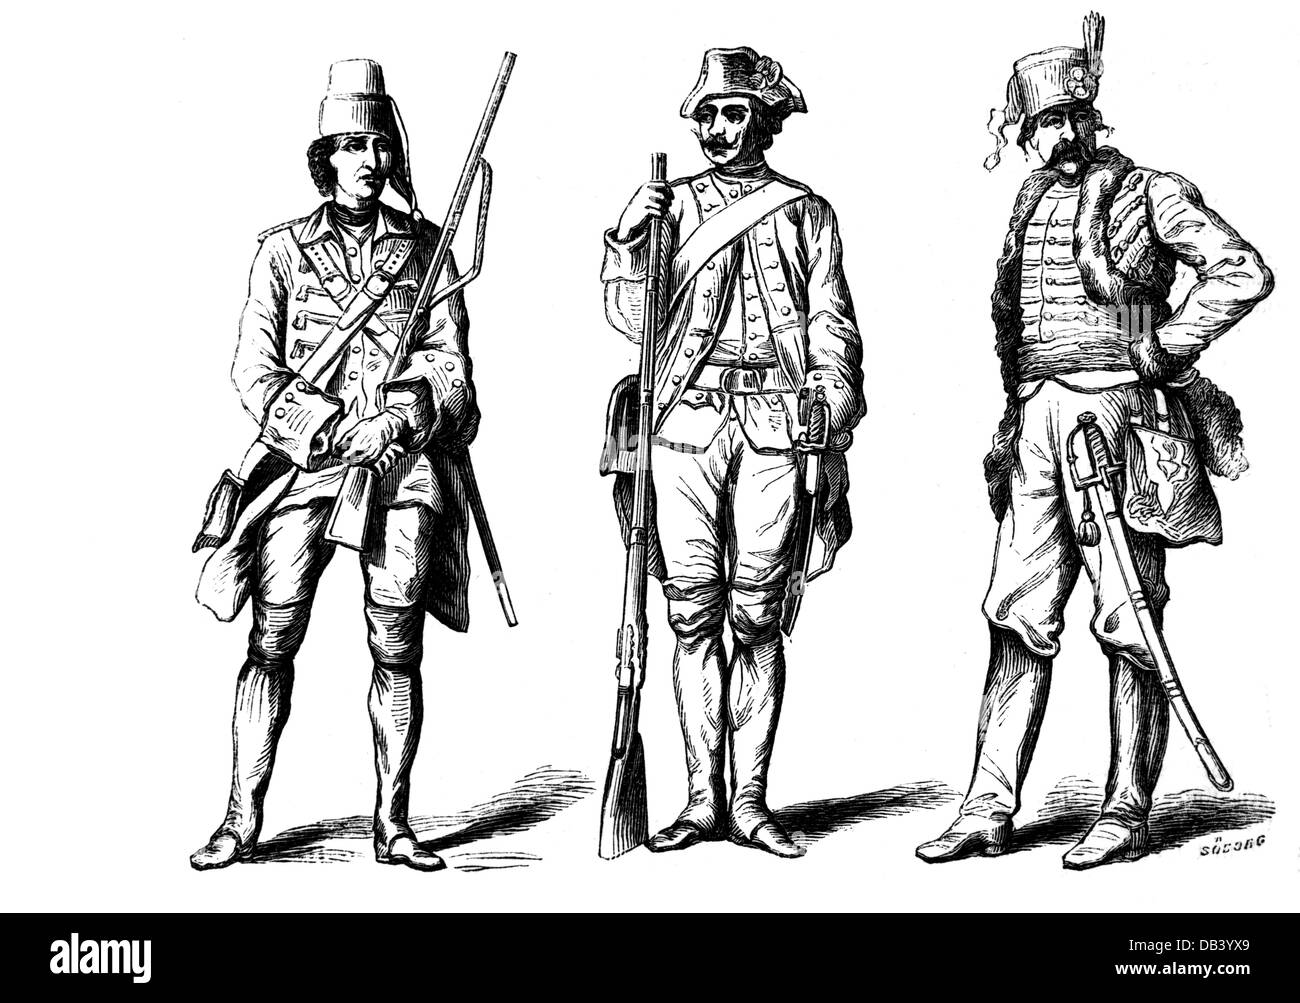 military, Denmark, 'Old uniforms, from the middle of the last century', musketeer, rifleman, hussar, wood - Stock Image